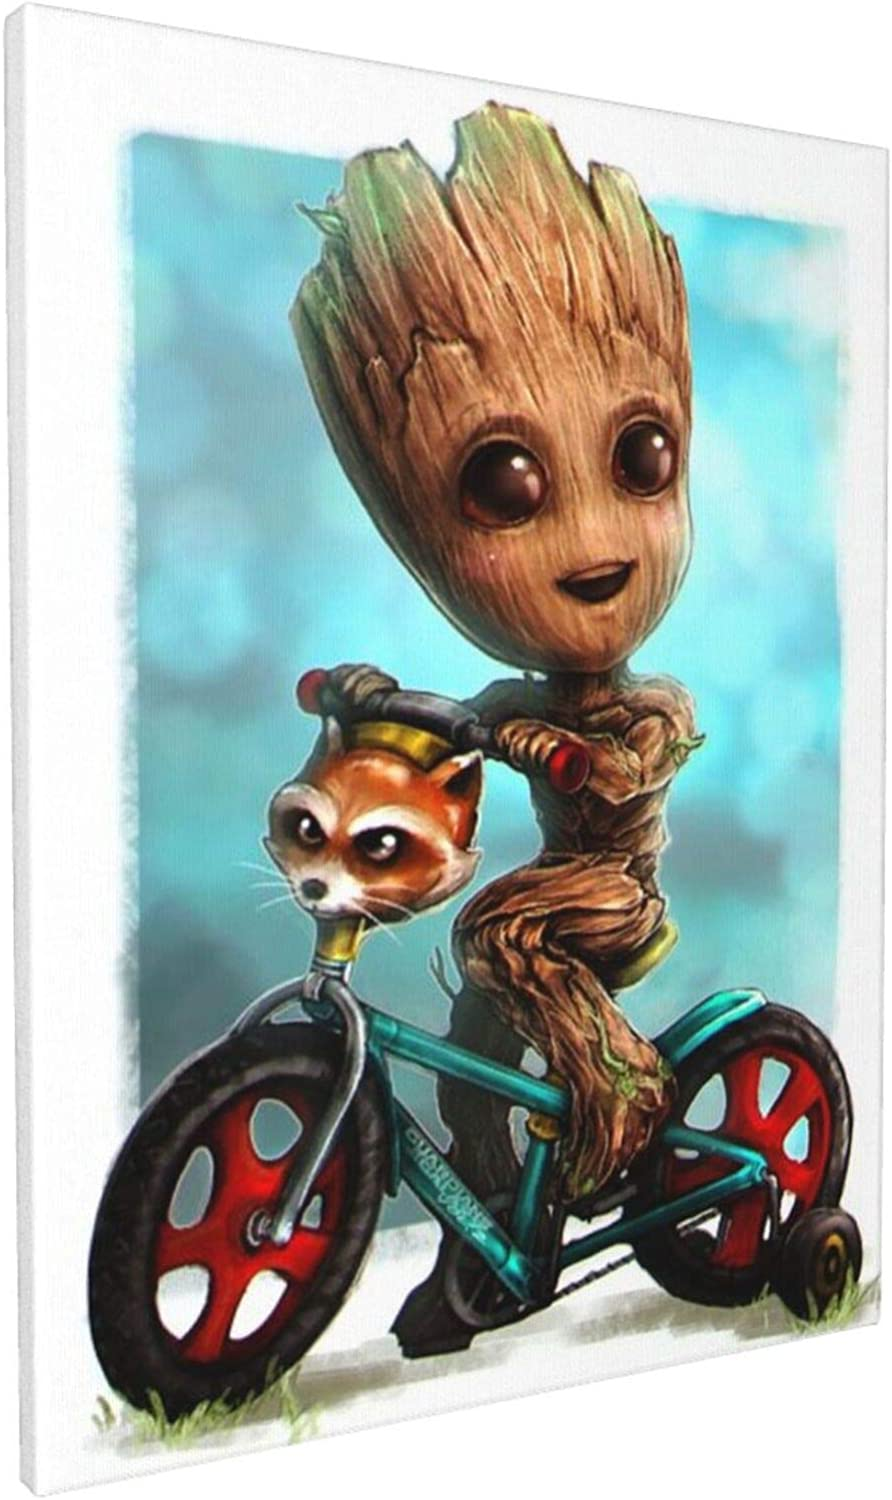 Aisuwer Groot Kawaii Painting Canvas Prints for Home Wall Decor Bedroom Living Room Office Decoration Framed Ready to Hang